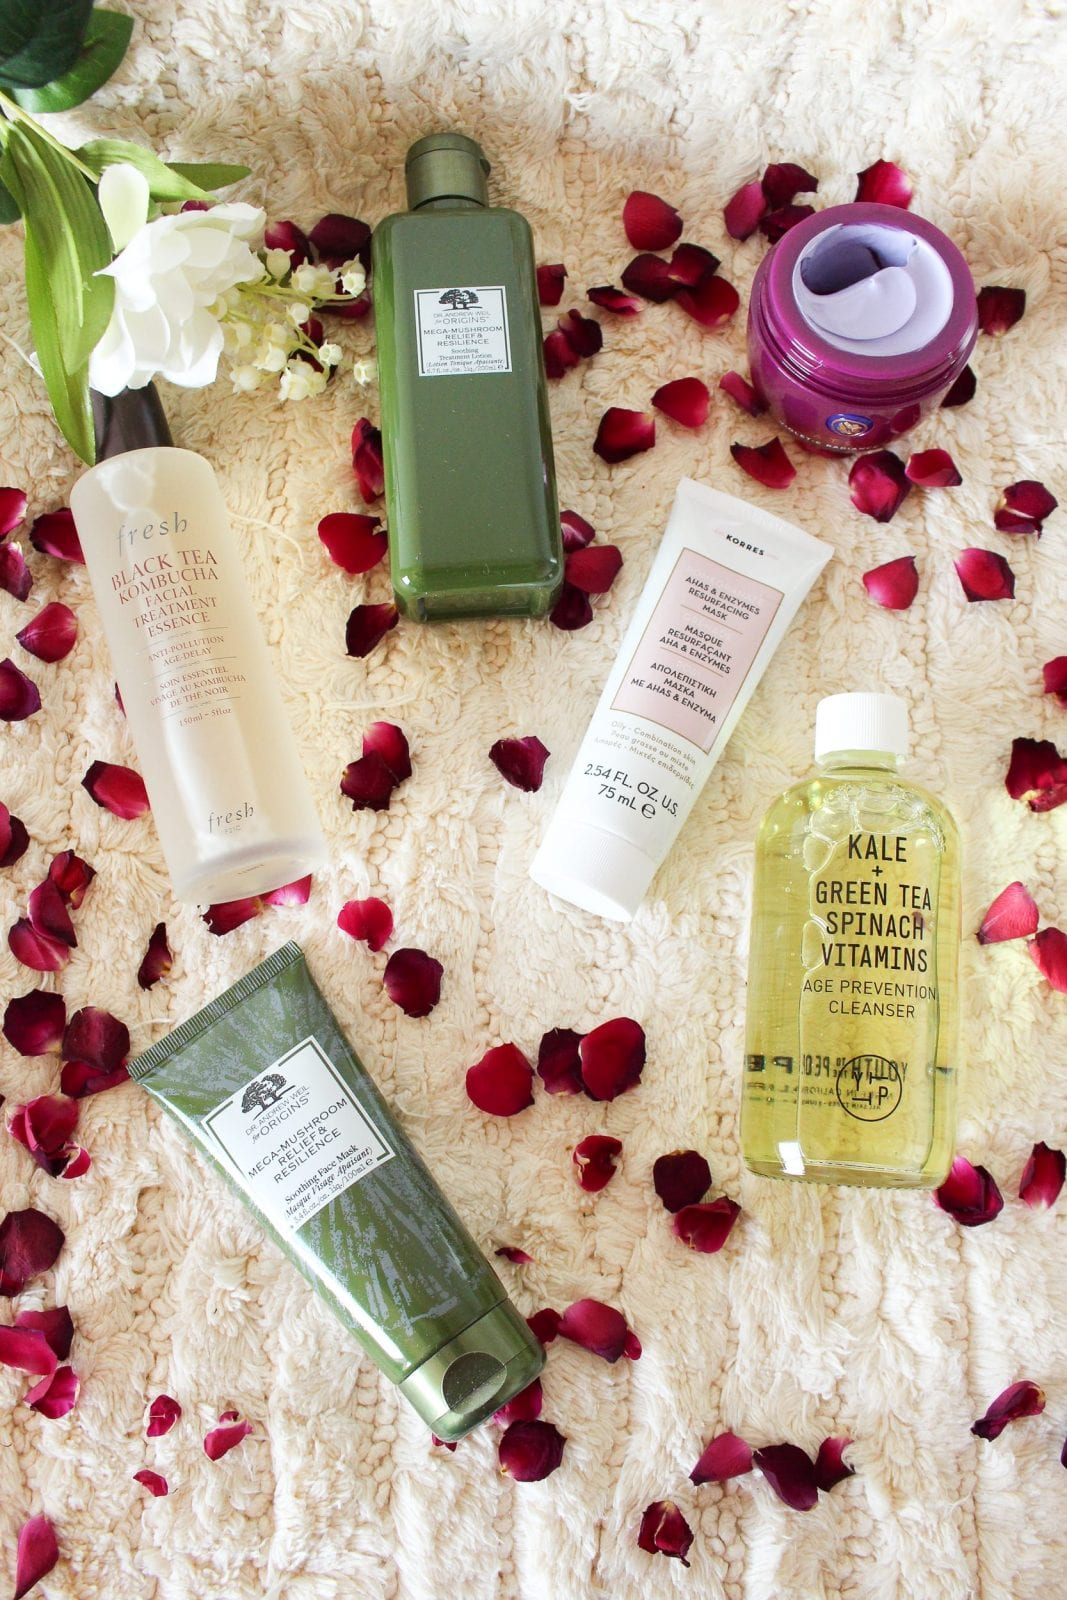 This is a flat lay of skincare favorites from Sephora Inside JCPenney.